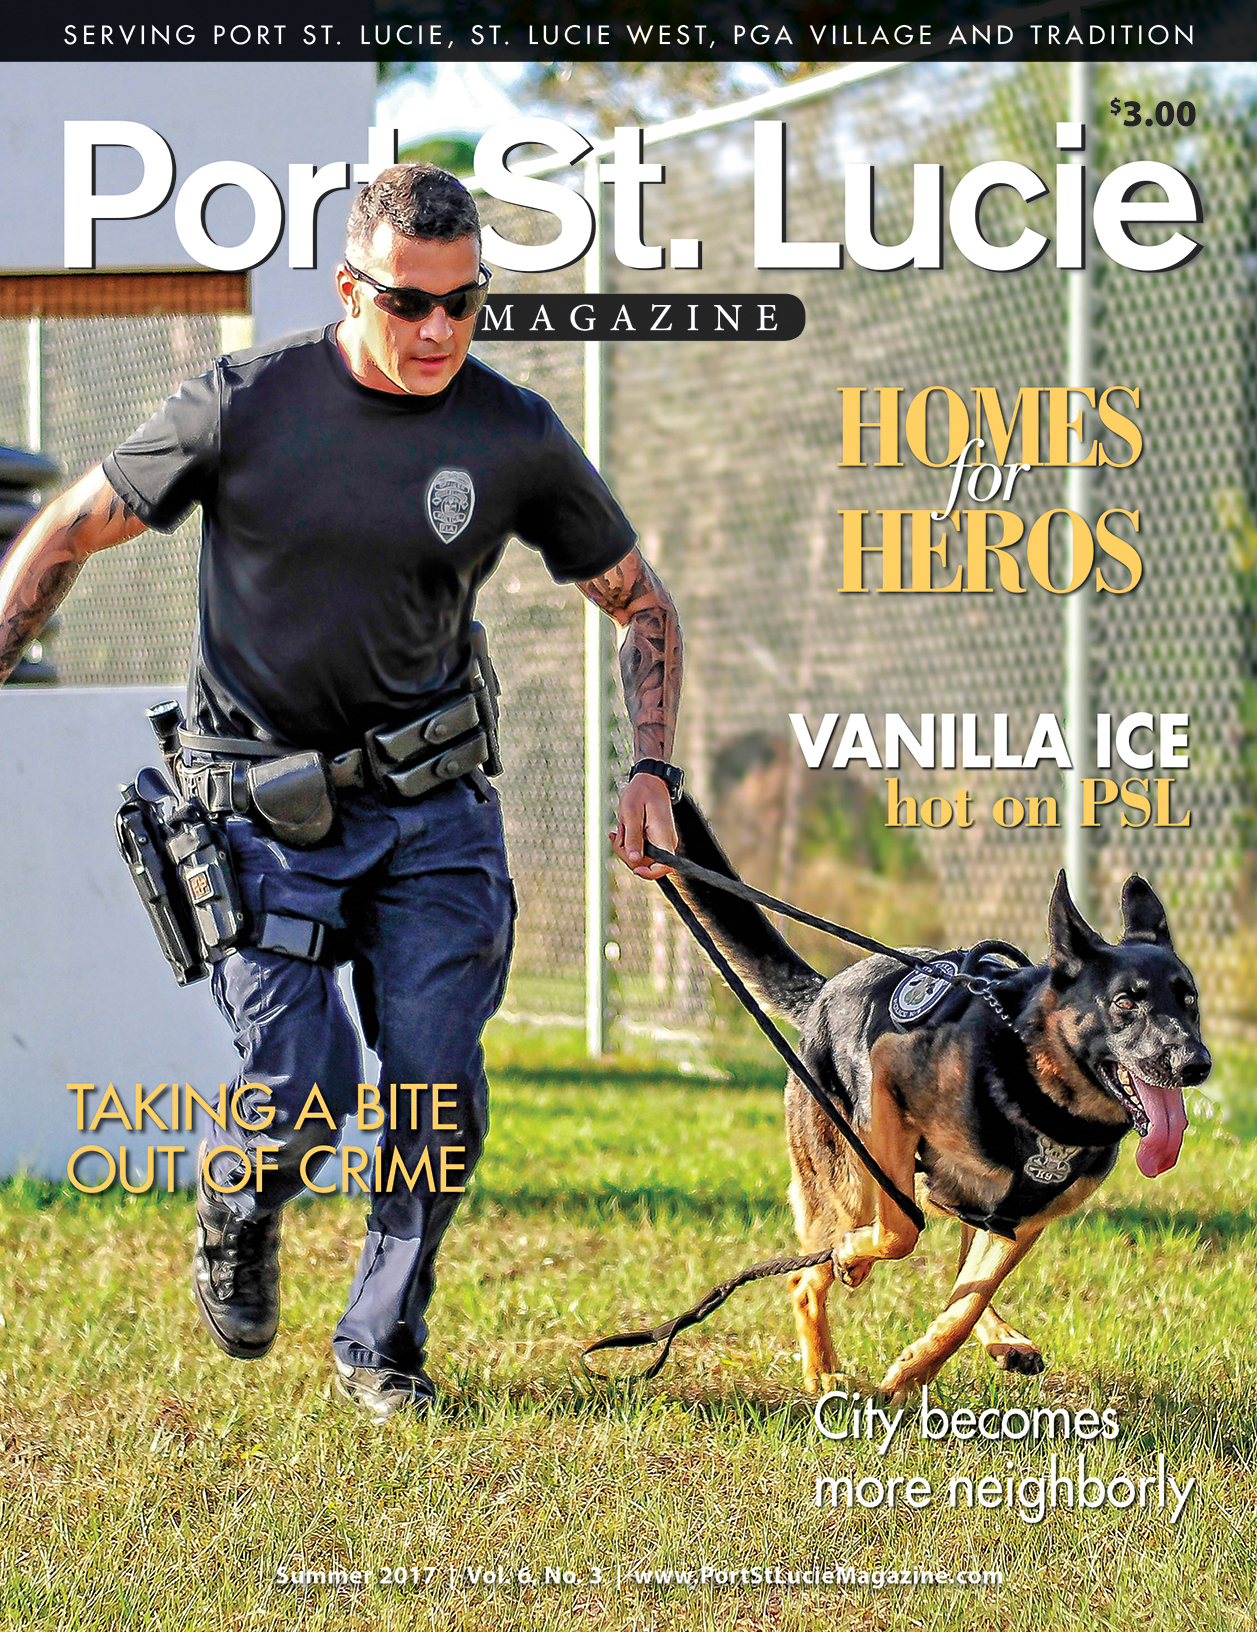 Port St. Lucie Magazine - Vol. 6, No. 3